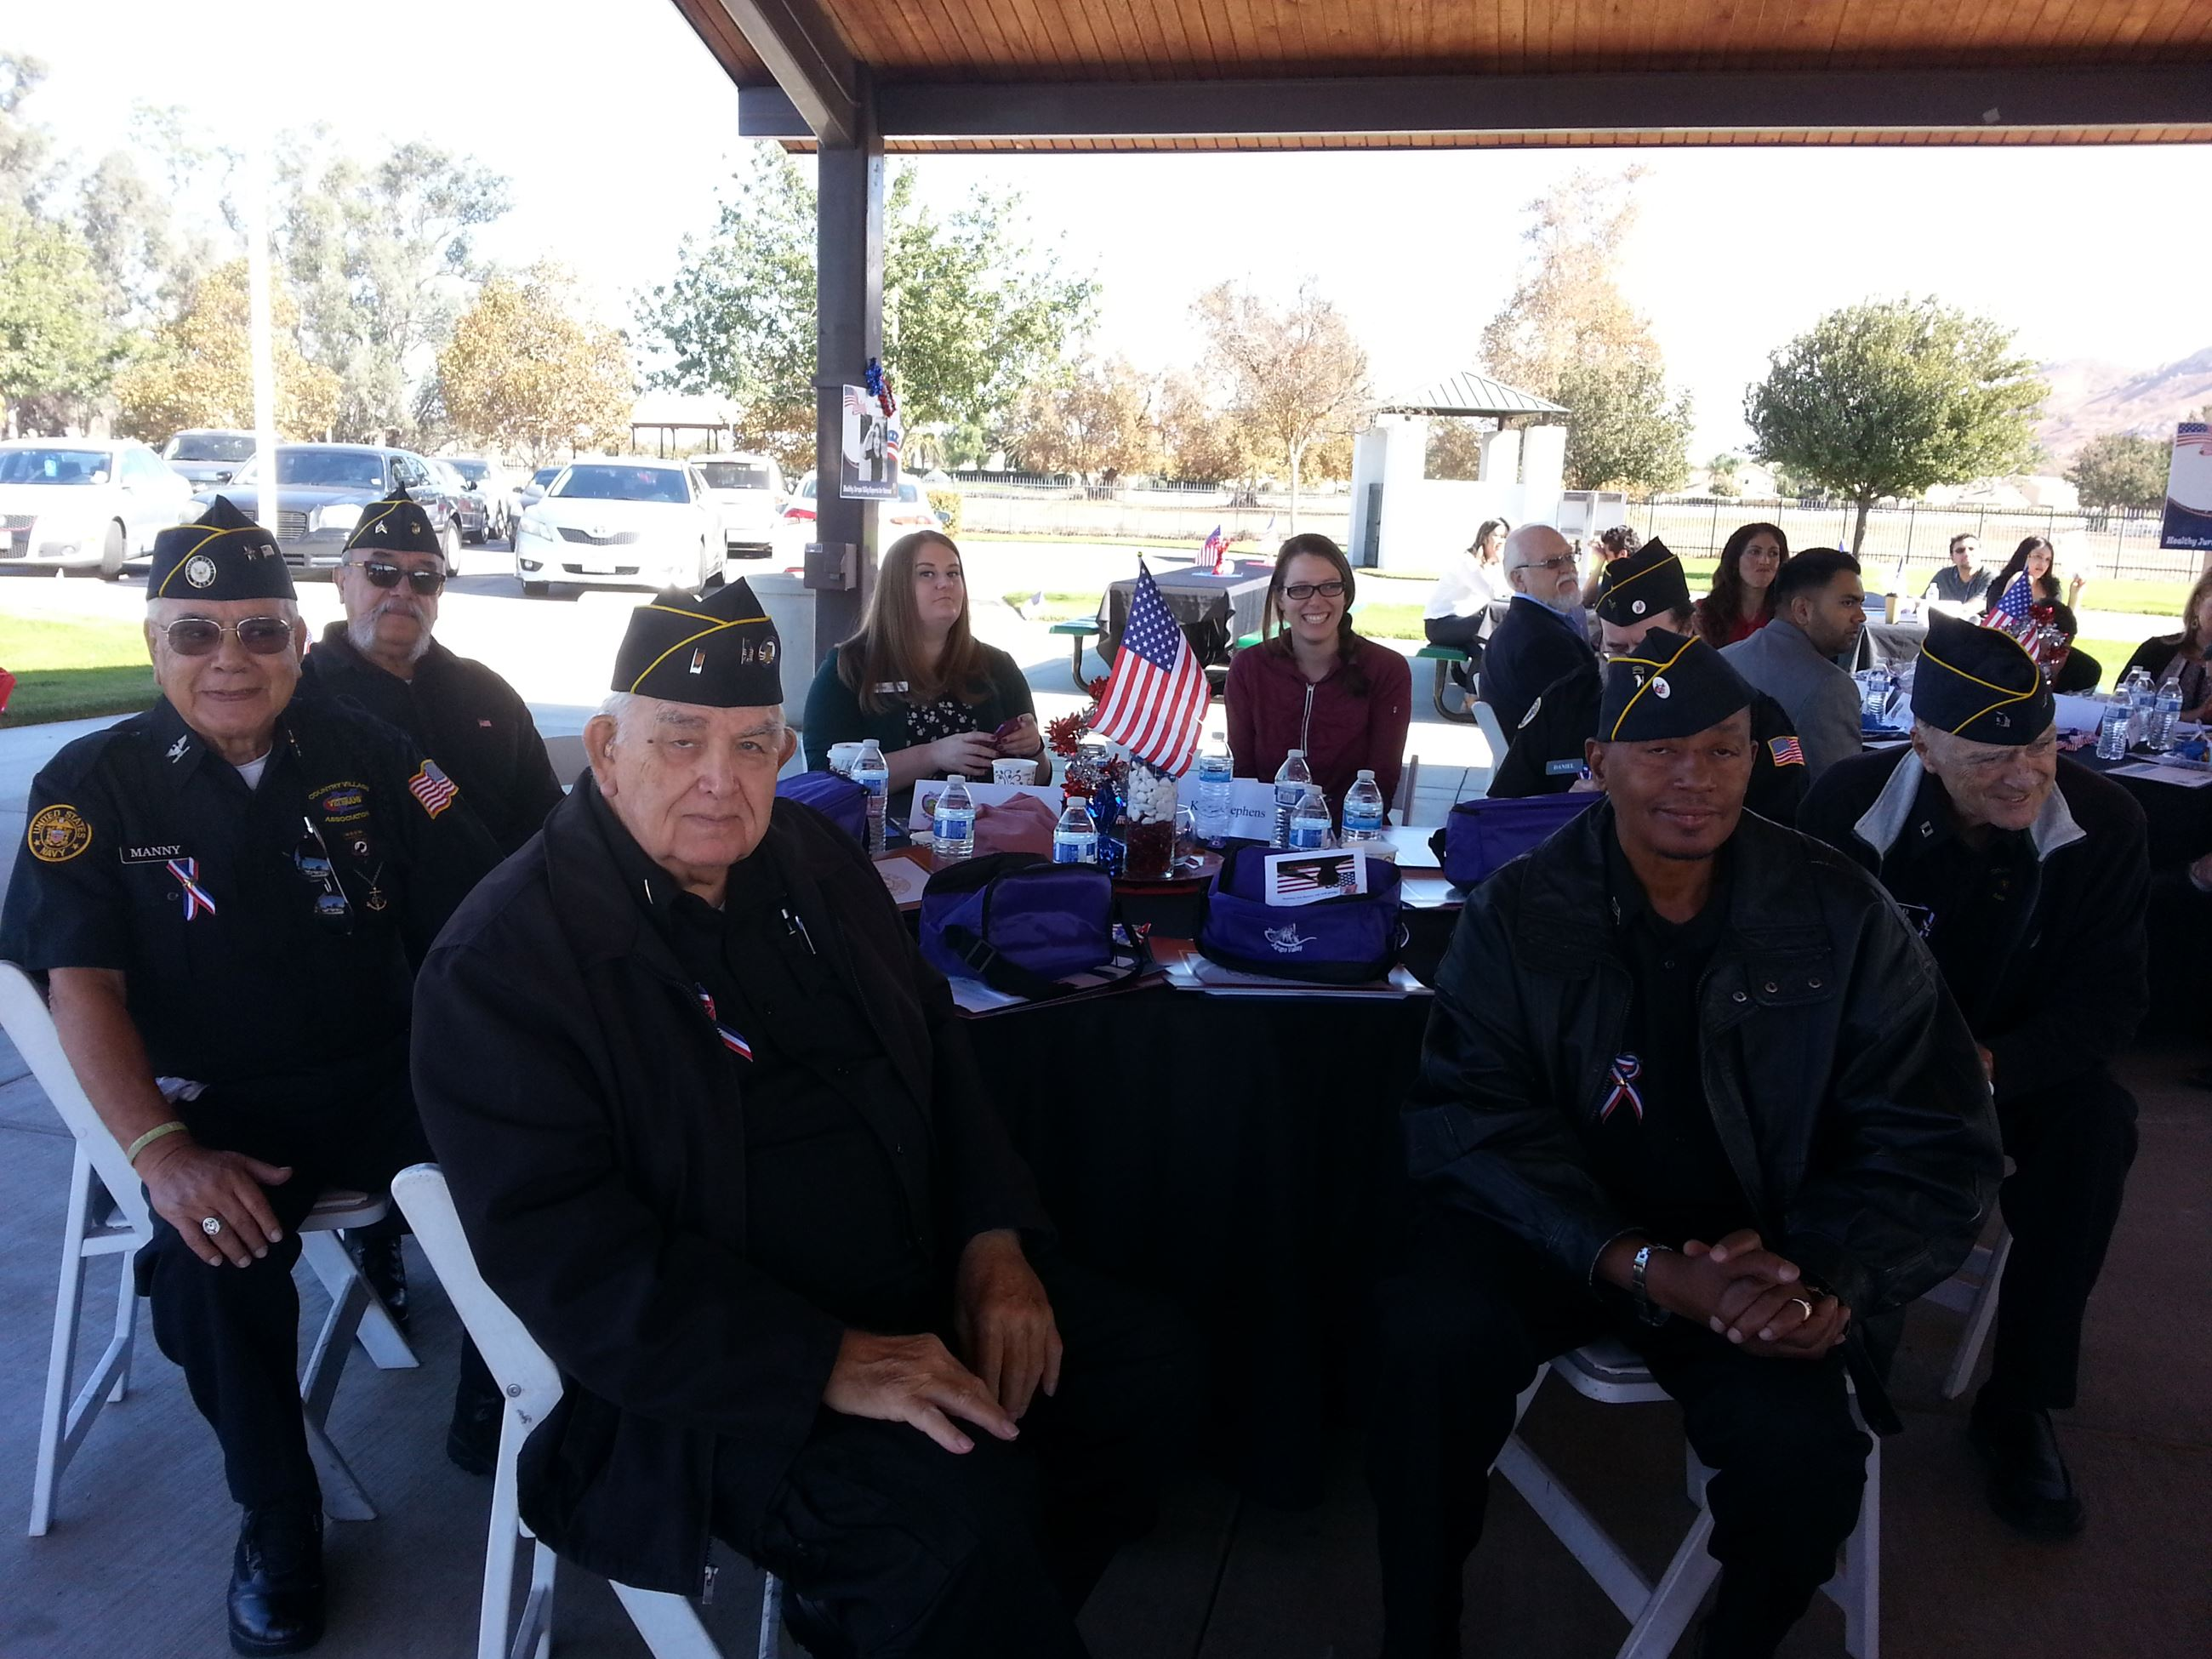 Group of Elderly Veterans Sitting at Table Together at Celebrating Veterans Event